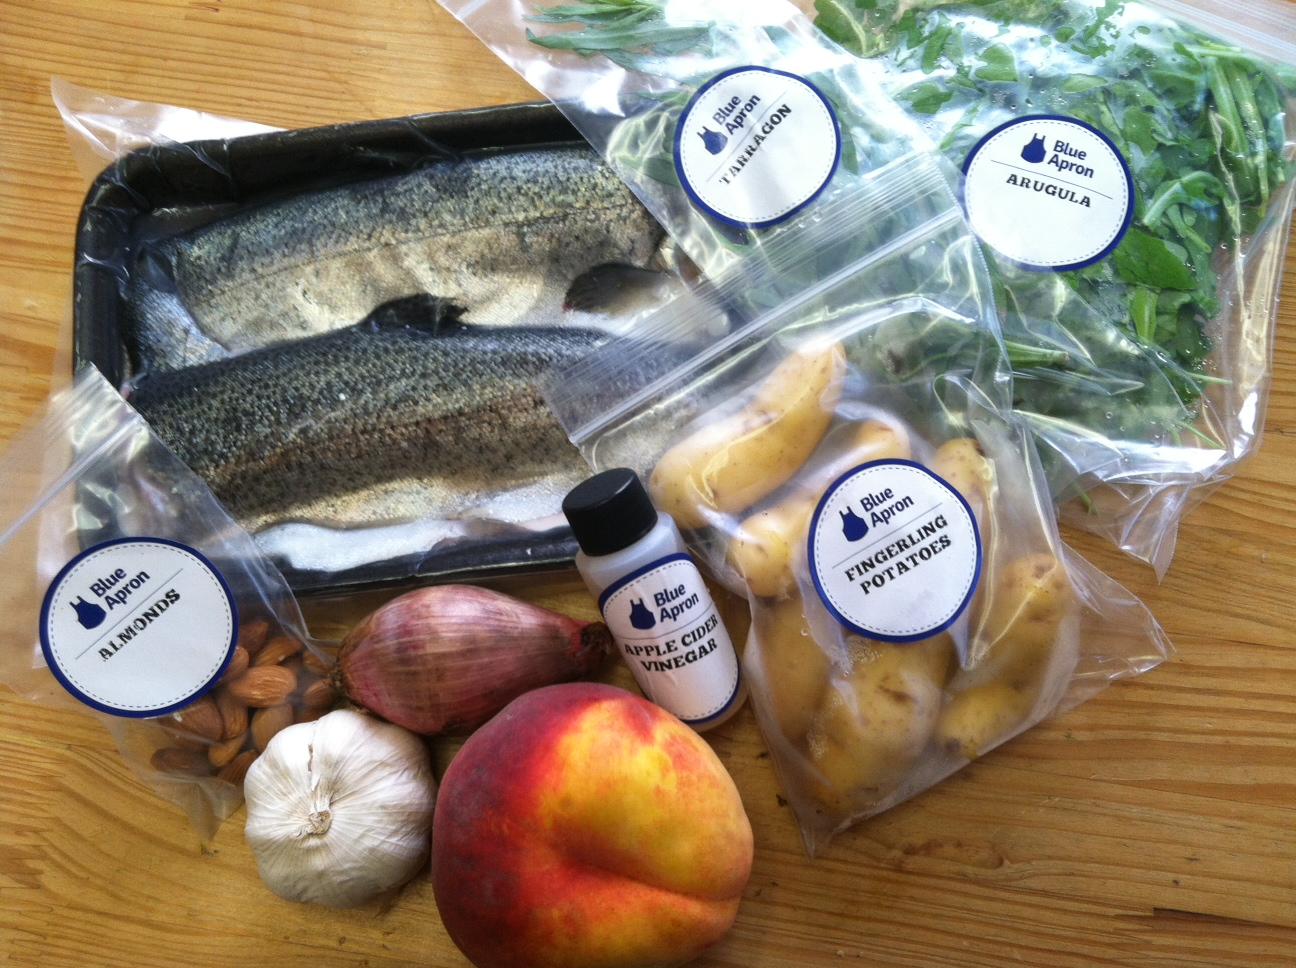 Blue apron diet - The First Meal In The Box That I Received Was Seared Trout With Peach And Arugula Salad My Husband I Prepared This Together He Cooked The Fish While I